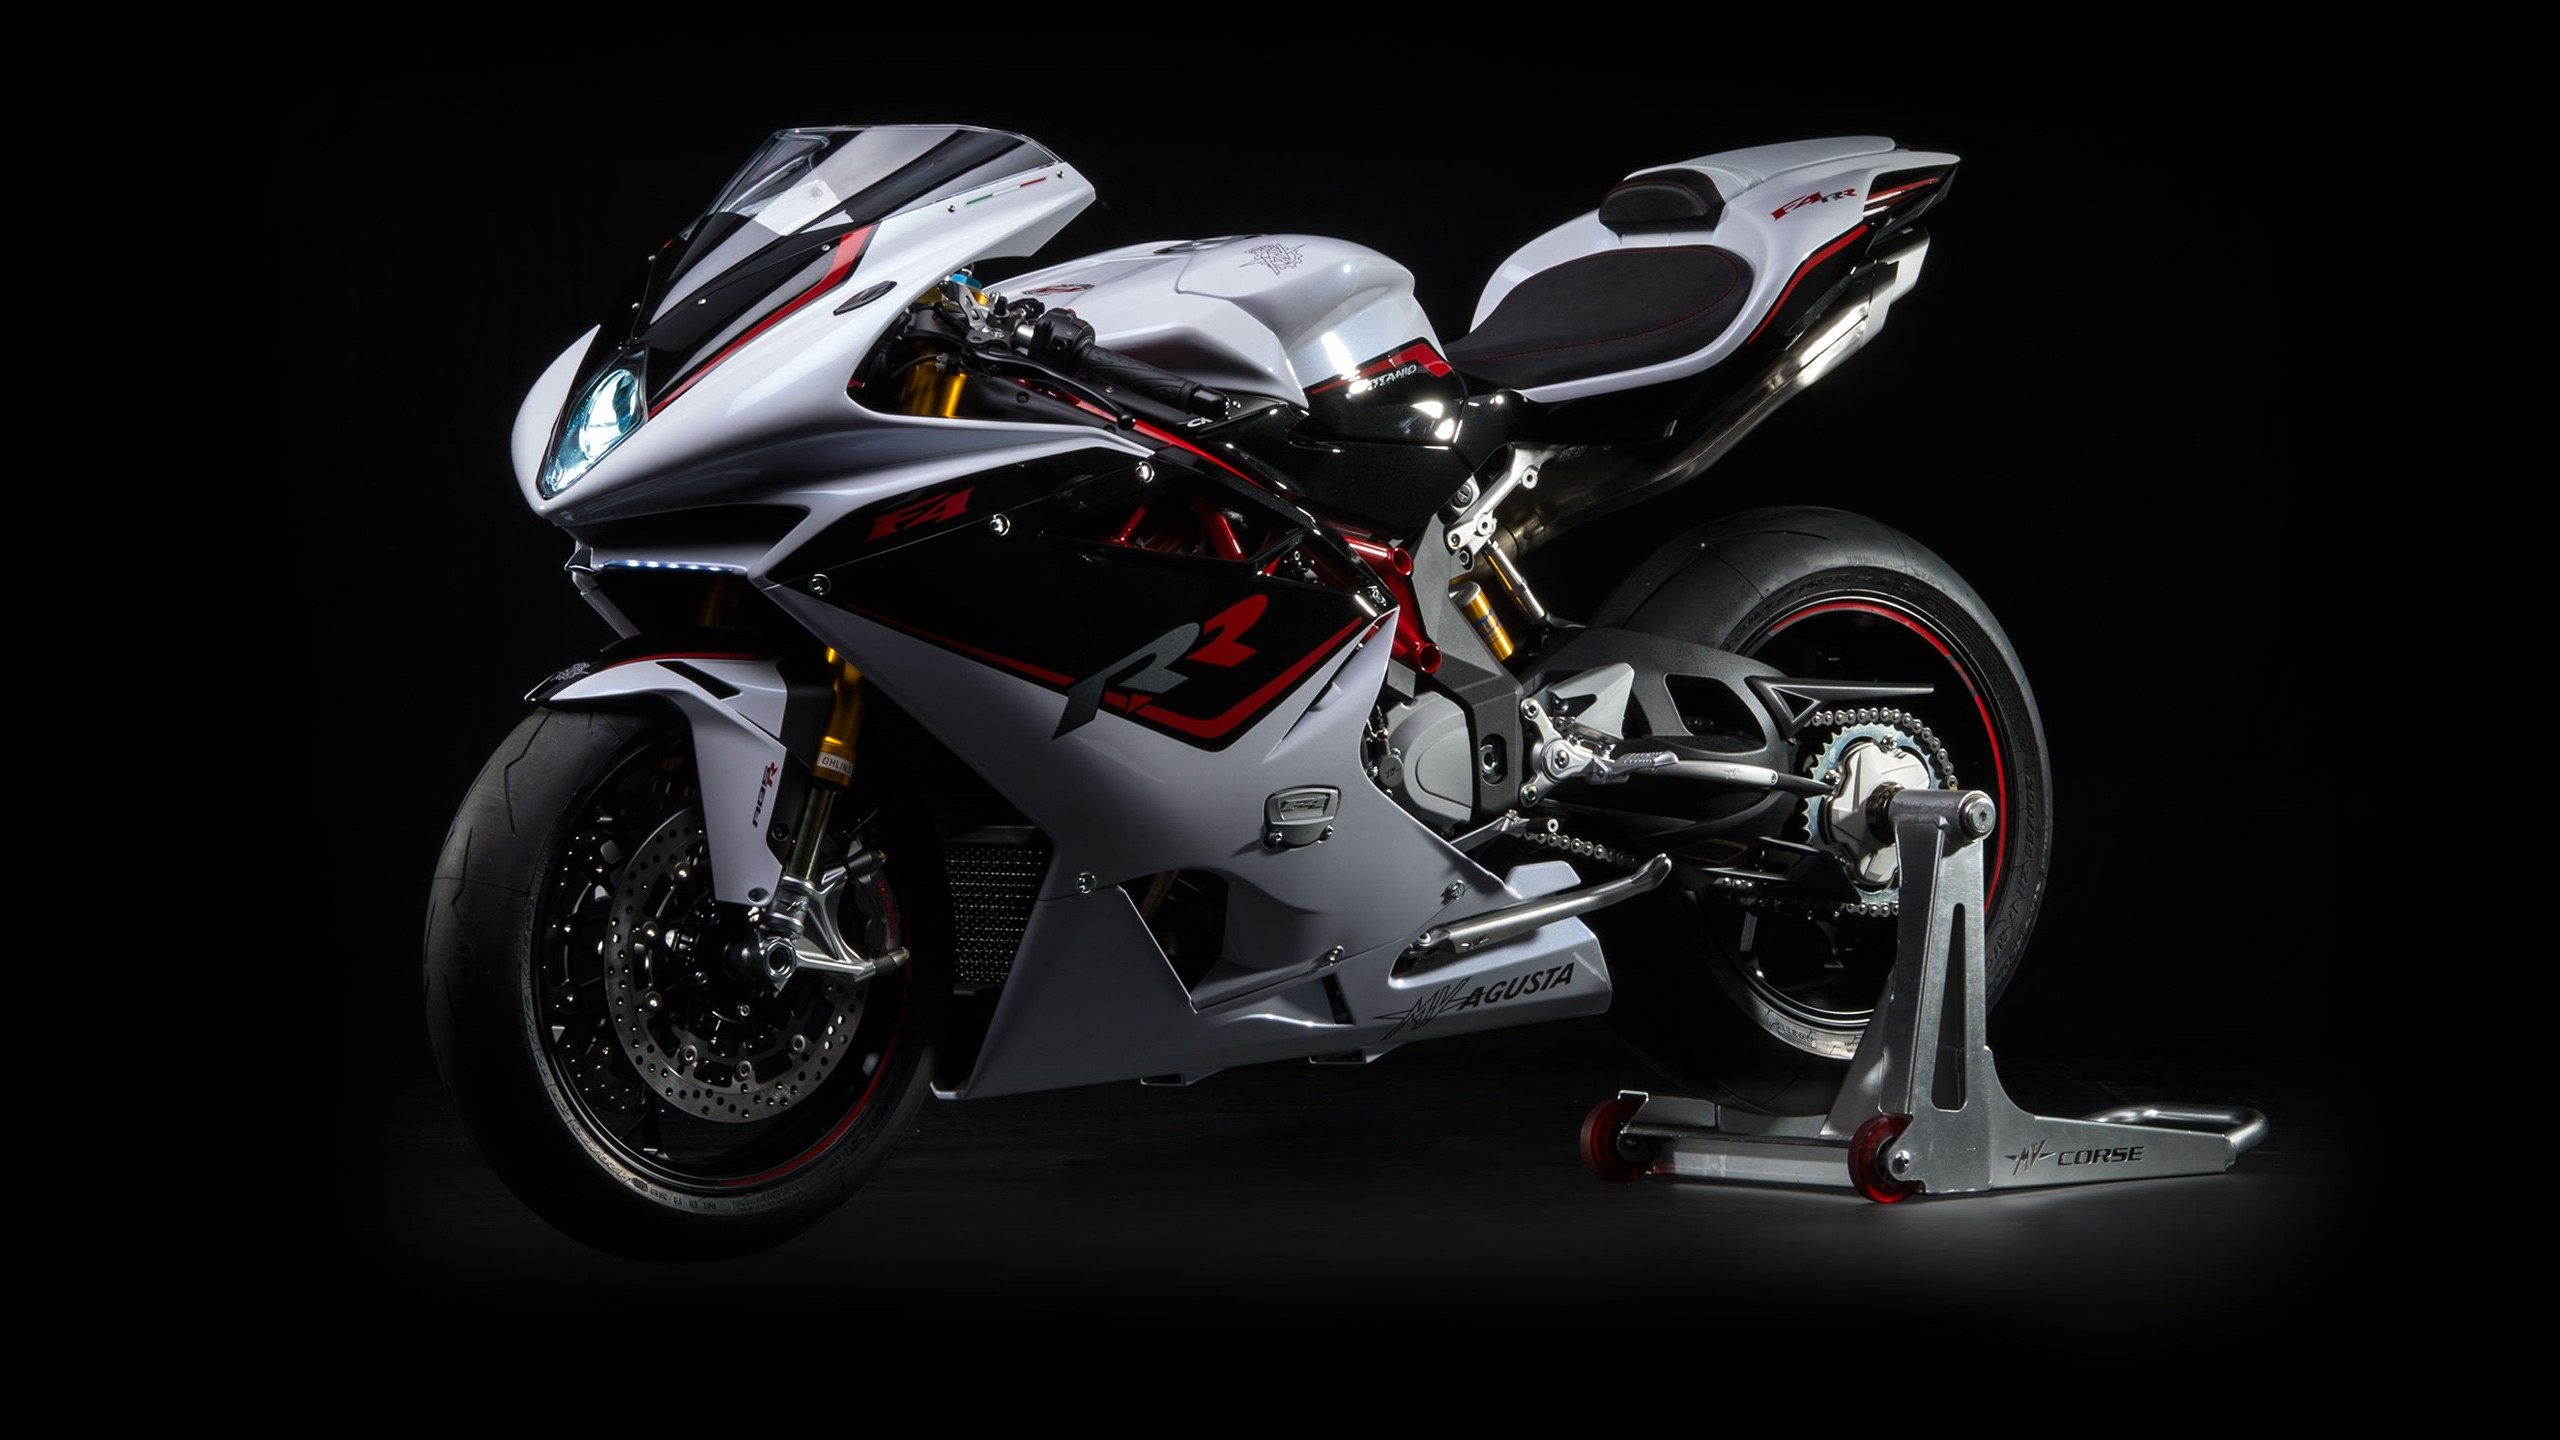 Bmw White Cars Wallpapers 2016 Mv Agusta F4 Rr Wallpapers Hd Wallpapers Id 18577